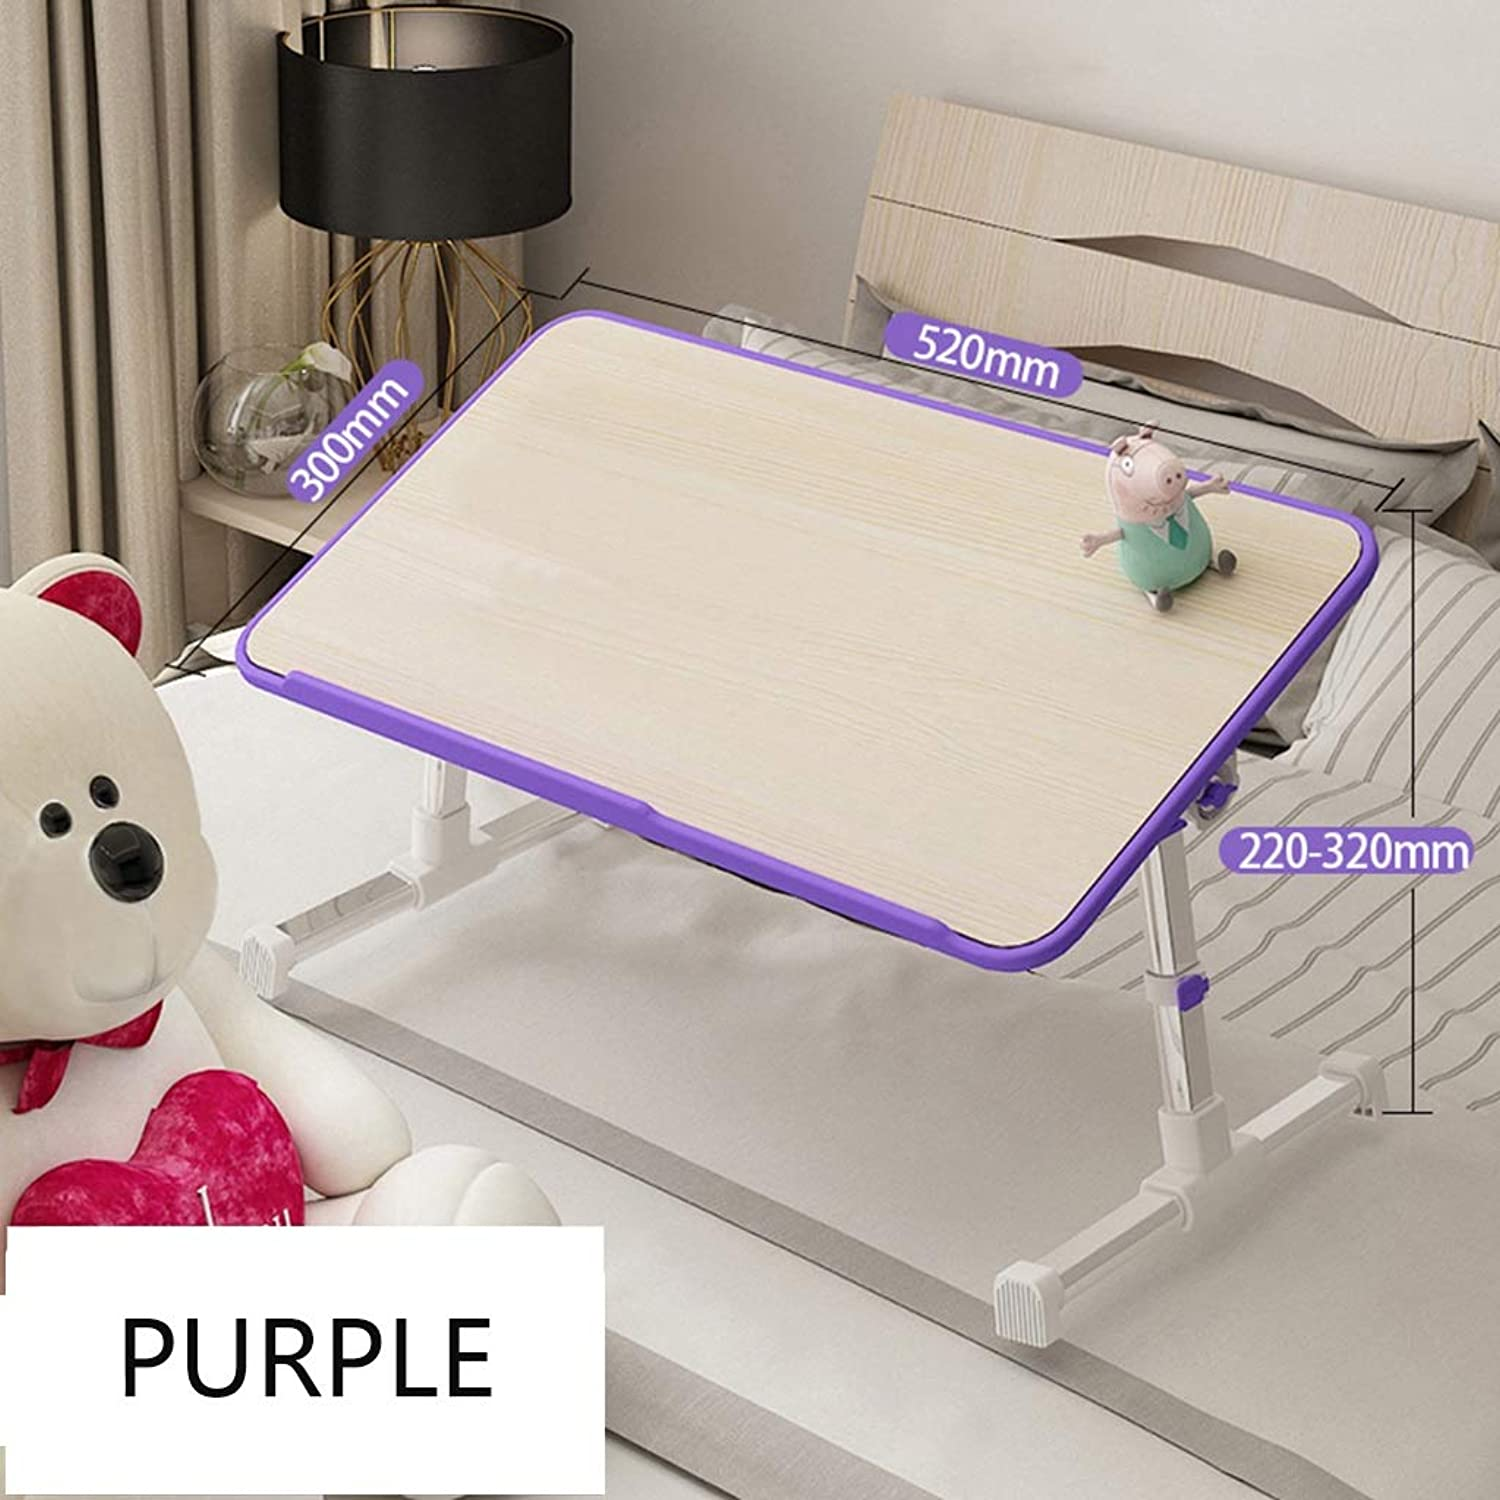 Folding Table Creative Multi-Function Bed Small Folding Table Computer Notebook Study Desk-Home Bedroom College Dormitory Dormitory (color   Purple, Size   520x300x200-320mm)